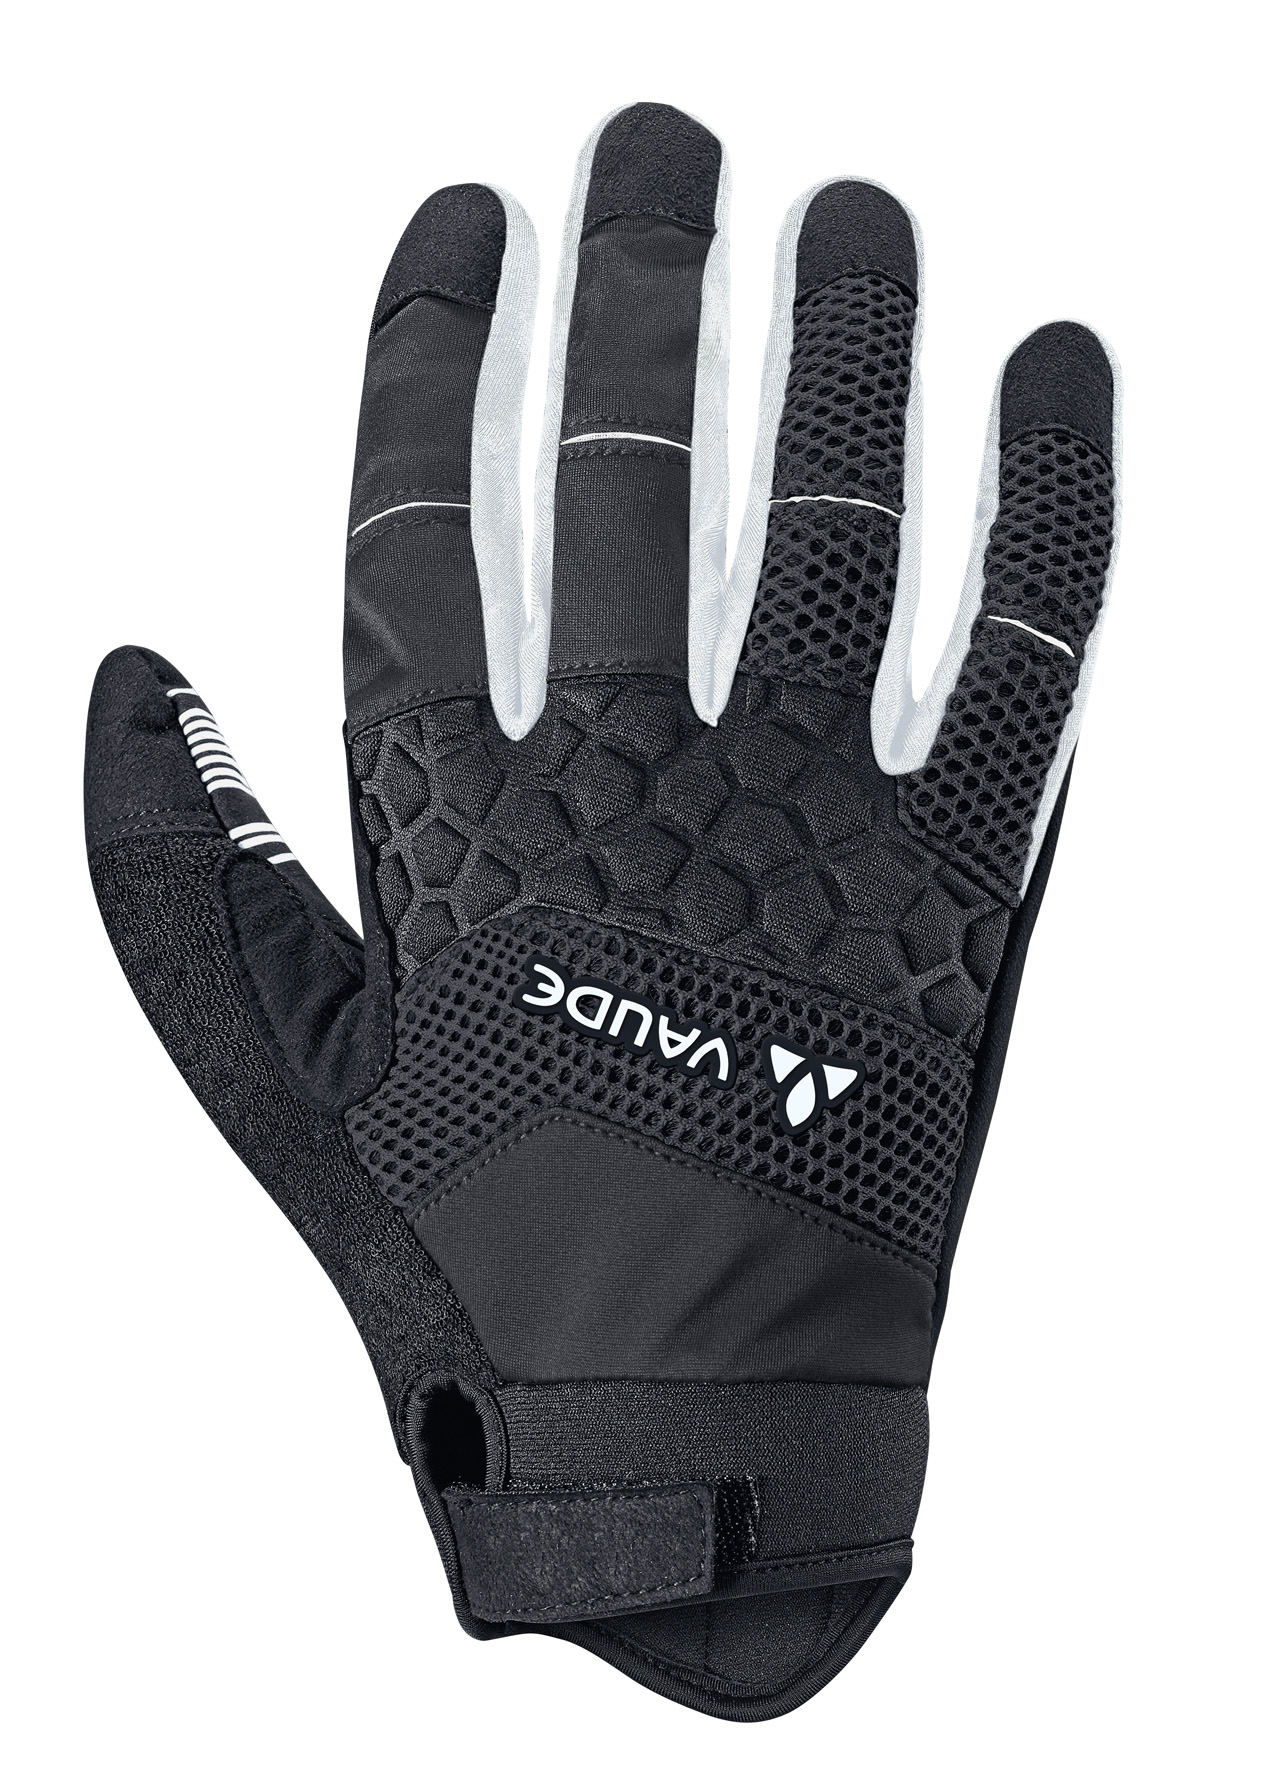 Men´s Cardo Gloves black Größe 5 - schneider-sports